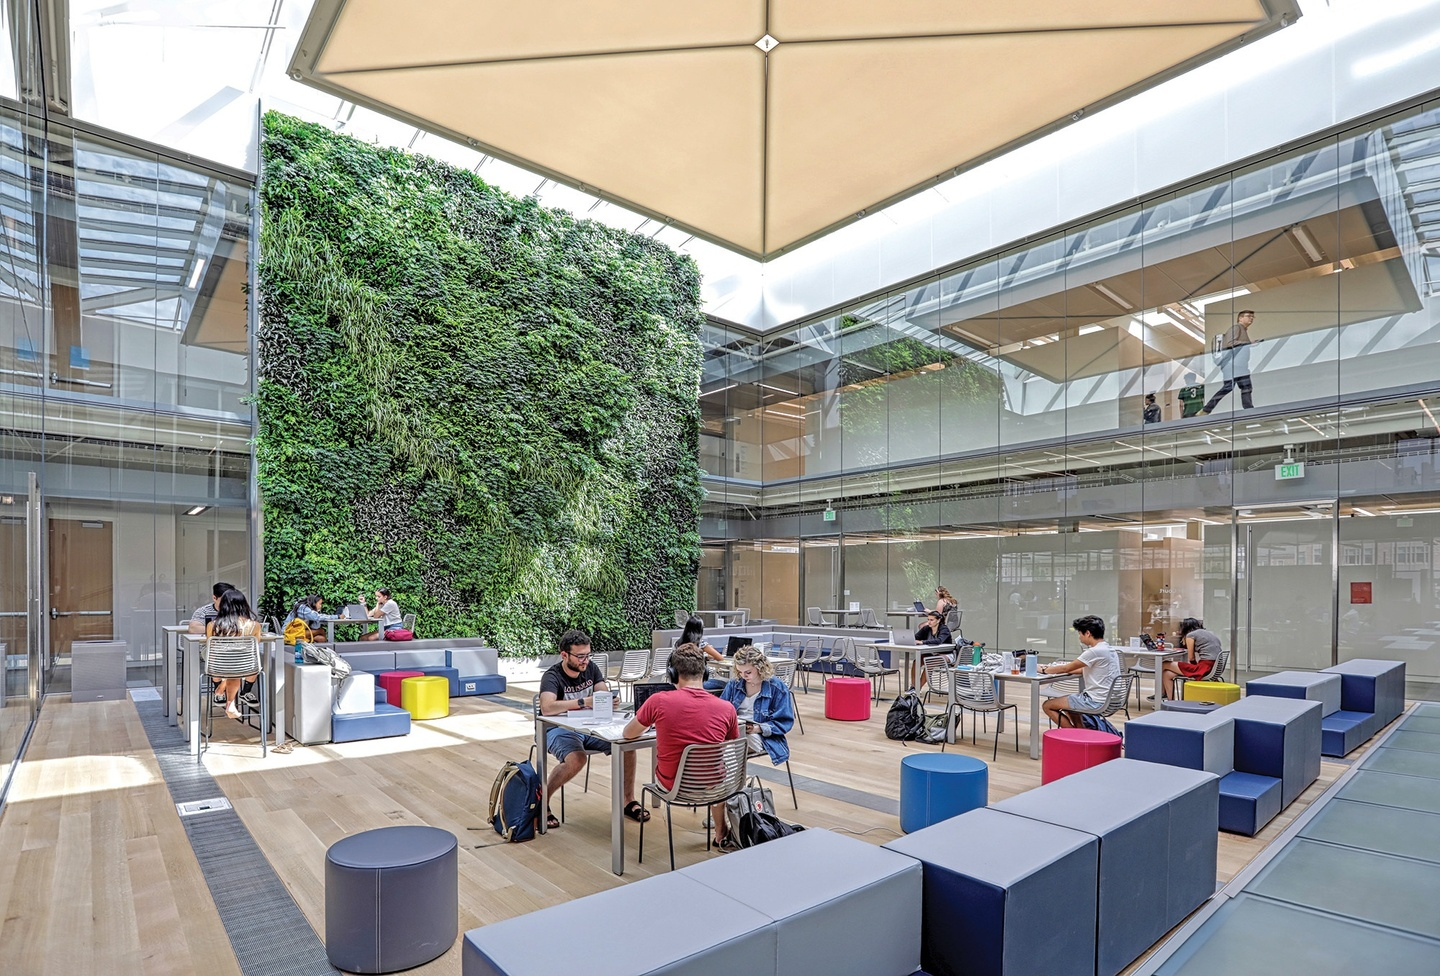 Light-filled, glass-walled court with people sitting at tables and around colorful soft seating; a two-story green wall filled with plants lines the back wall.